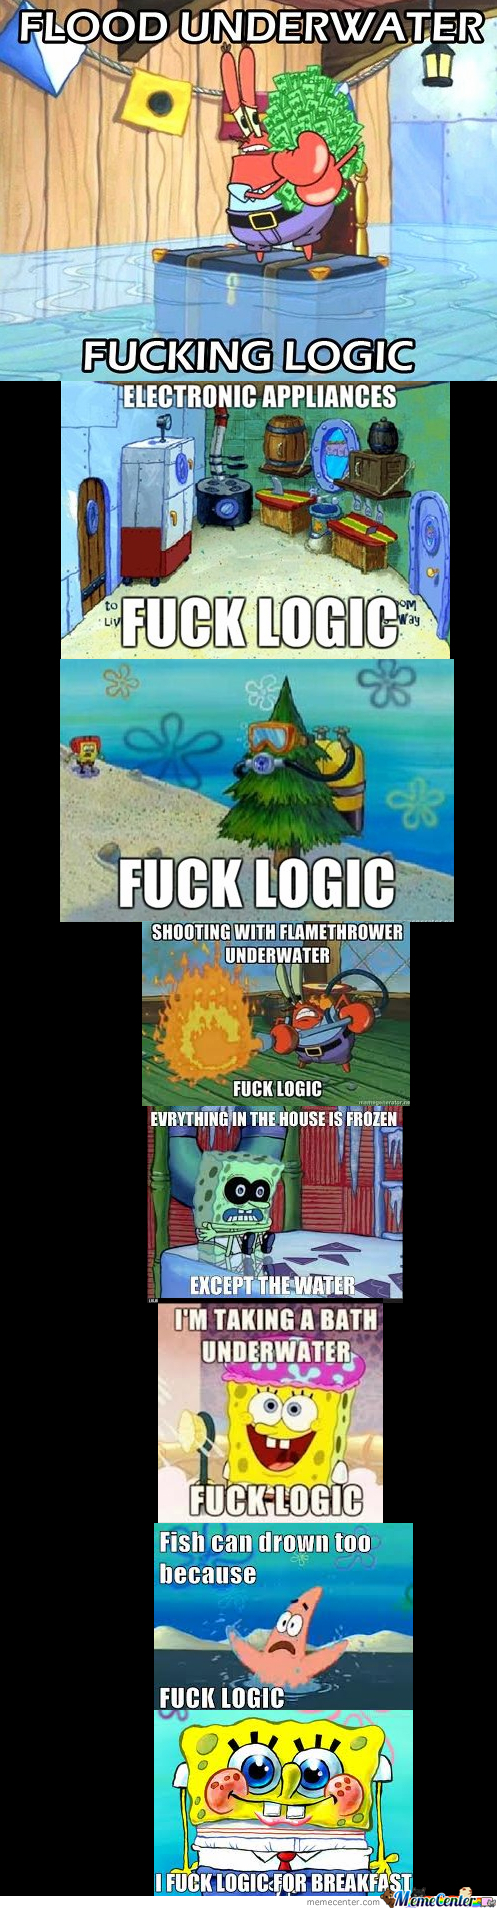 Spongebob Fuck All Logic